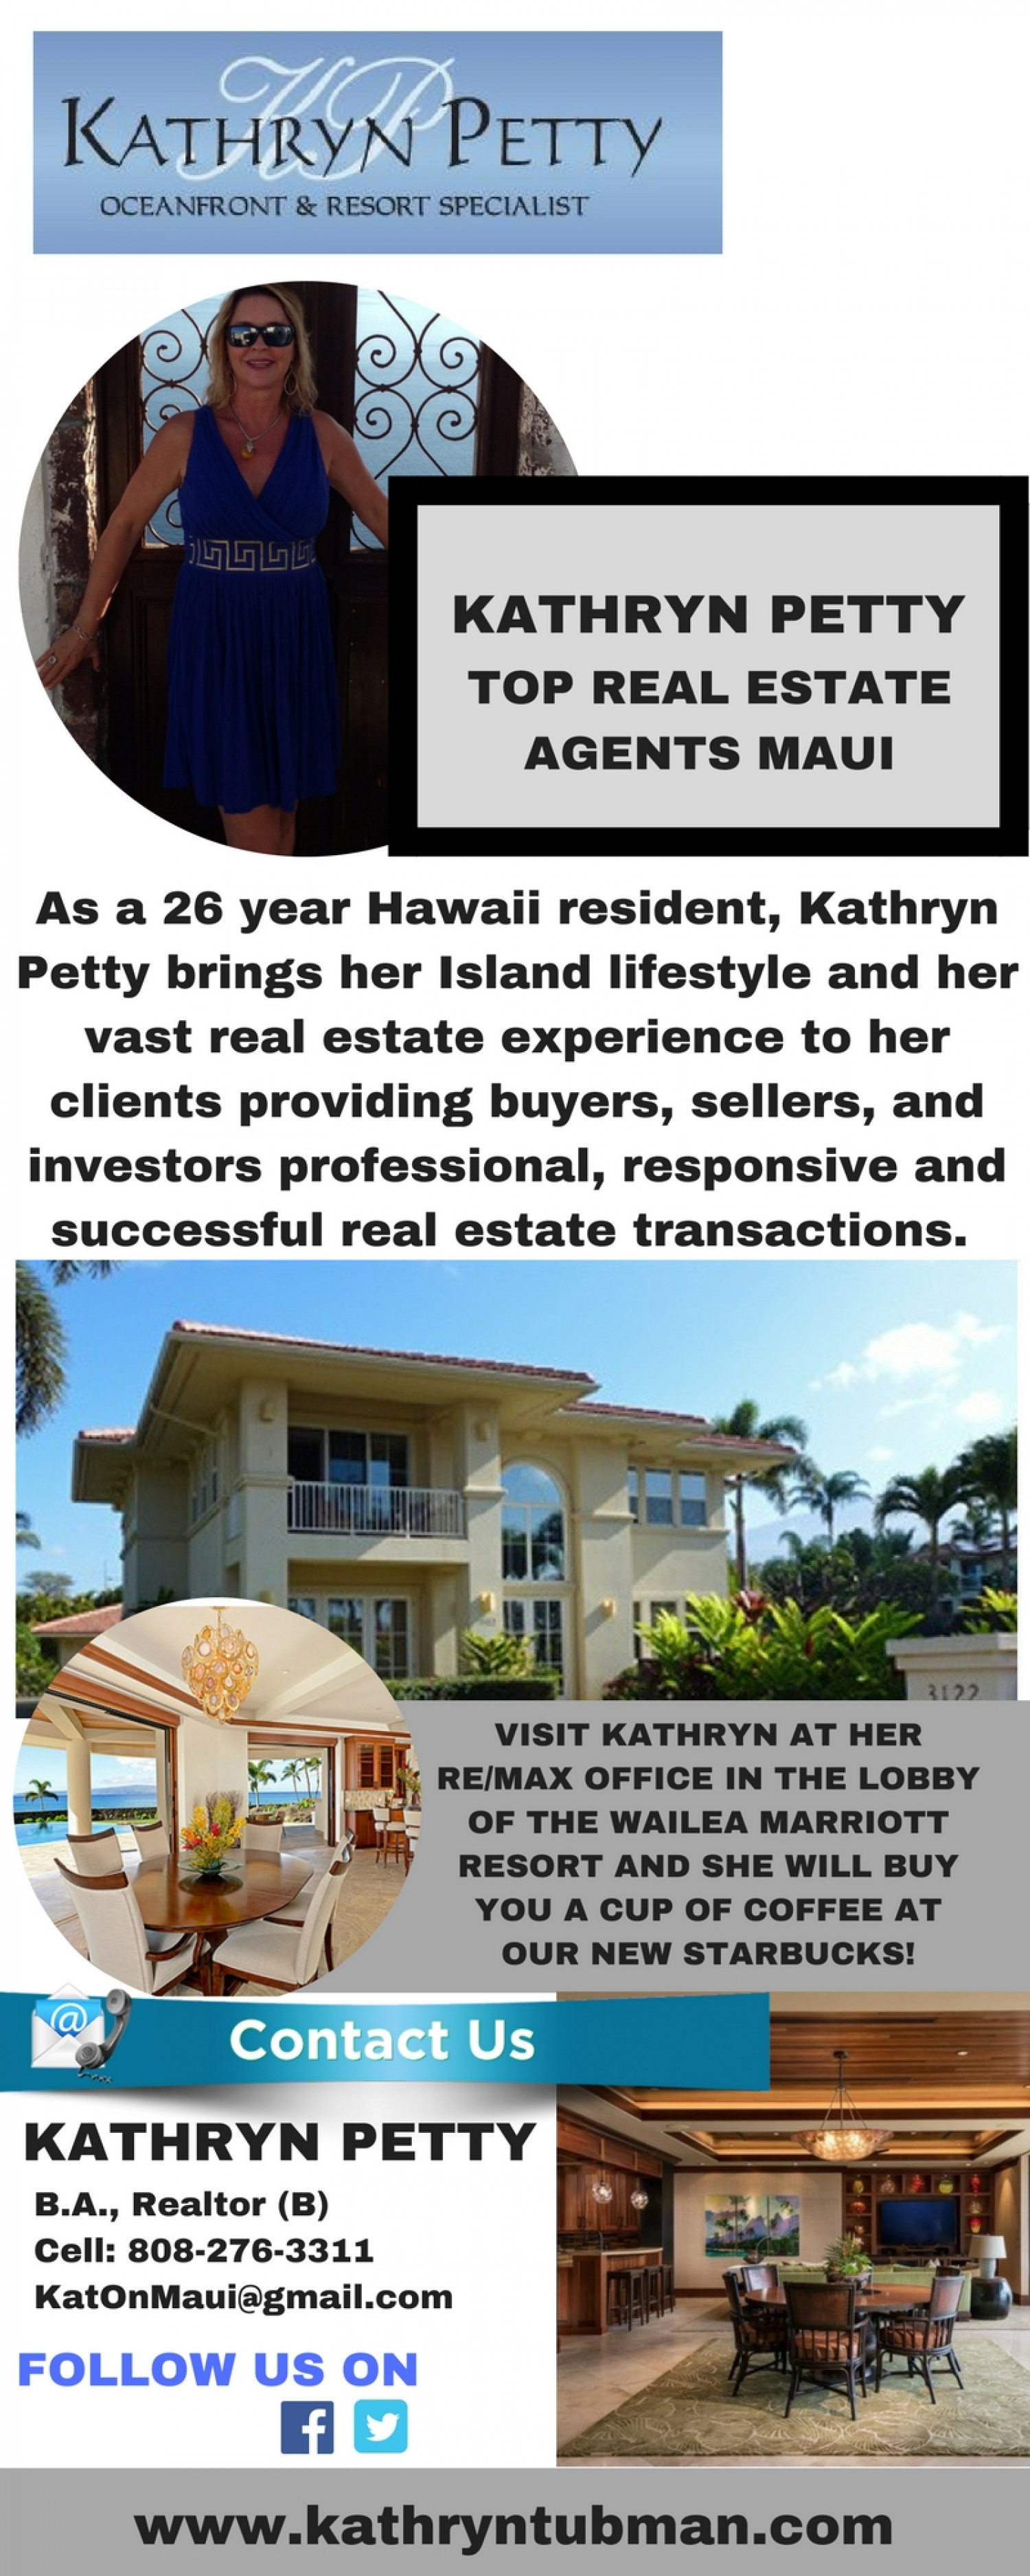 Maui Beachfront & Oceanfront Real Estate Specialist Kathryn Tubman Infographic